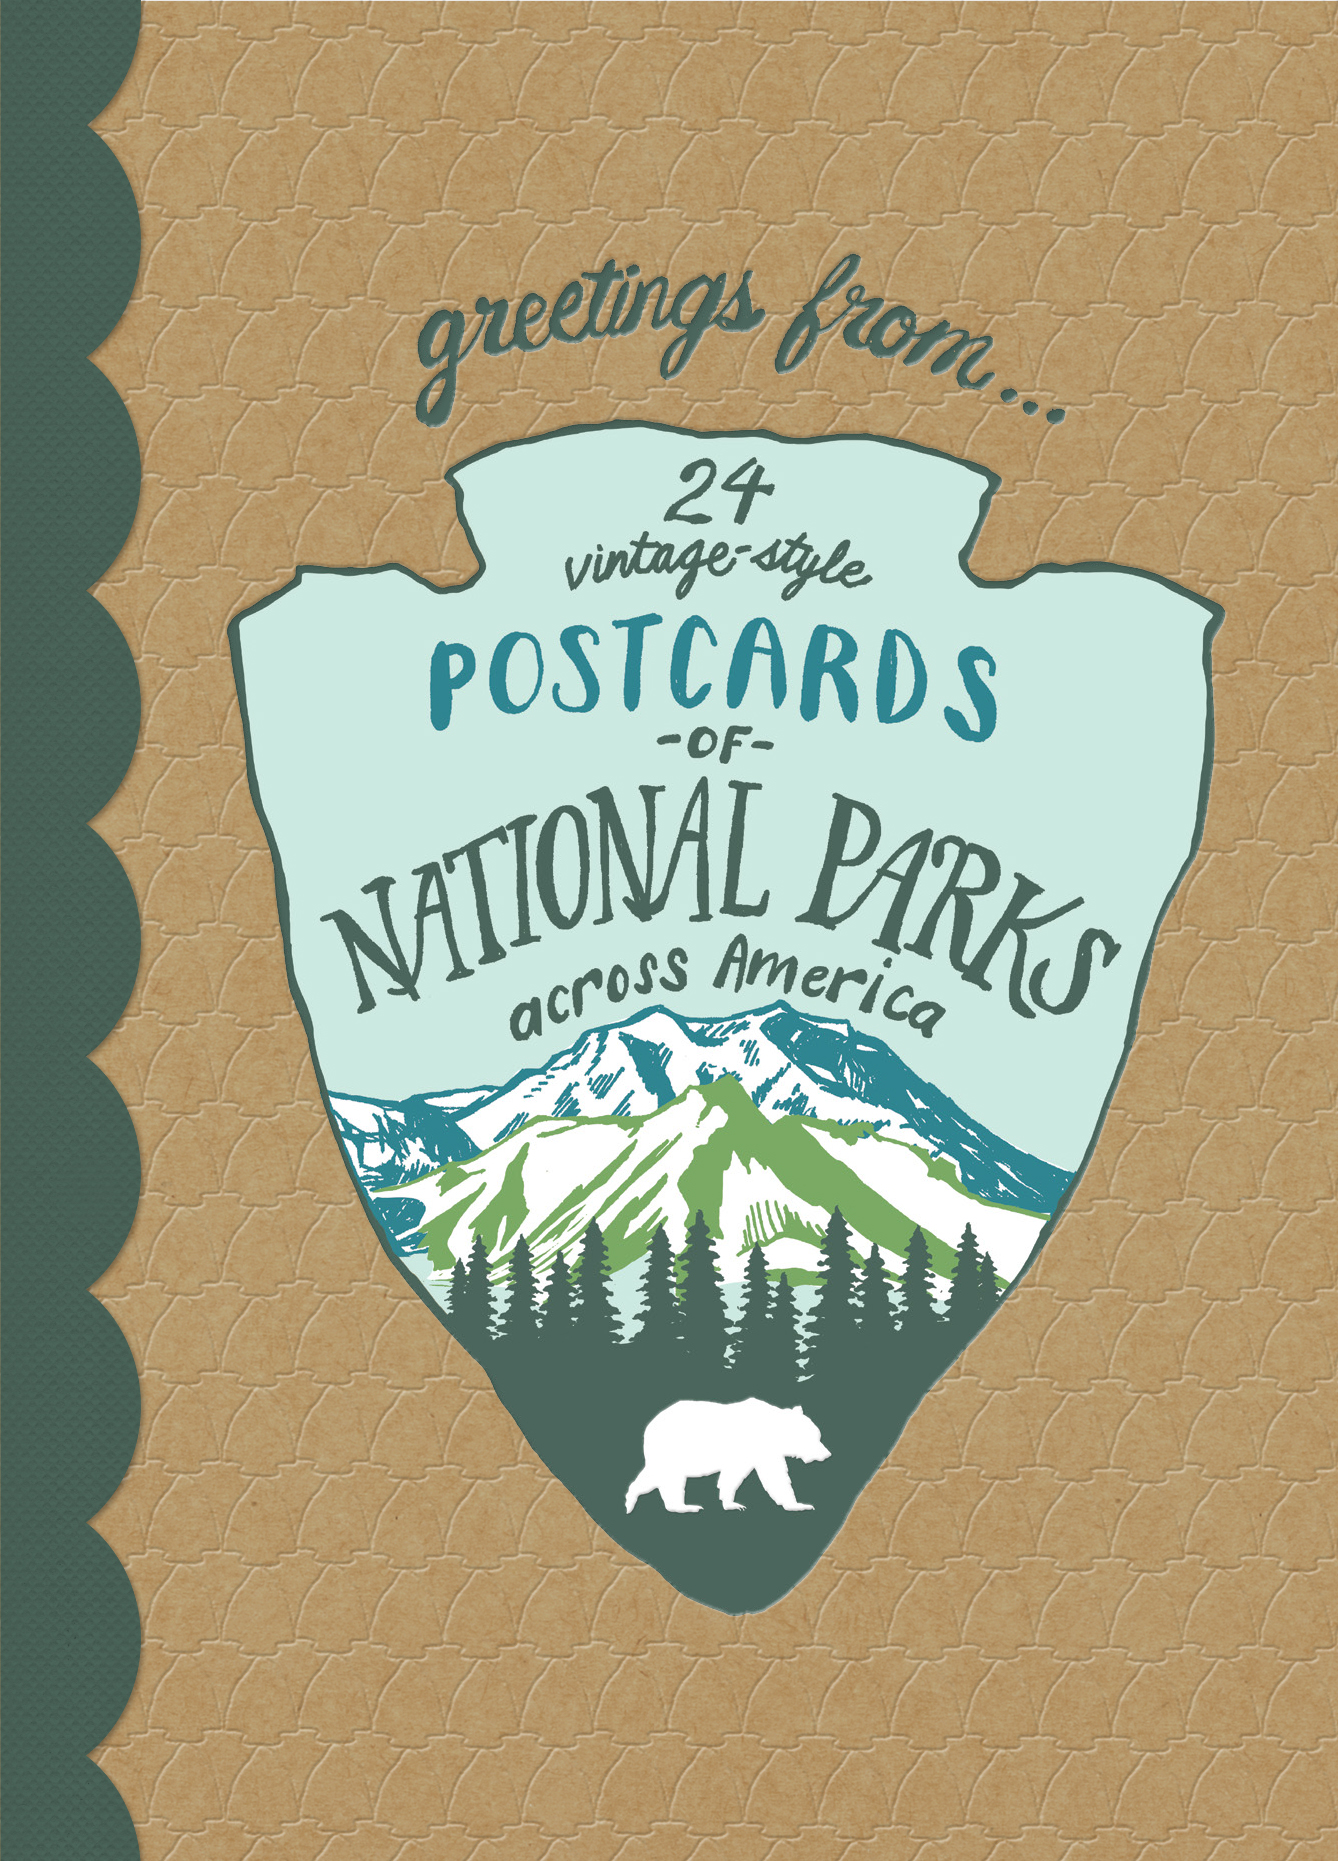 Greetings From: 24 Vintage-Style Postcards from National Parks Across America by Kathryn Hunter